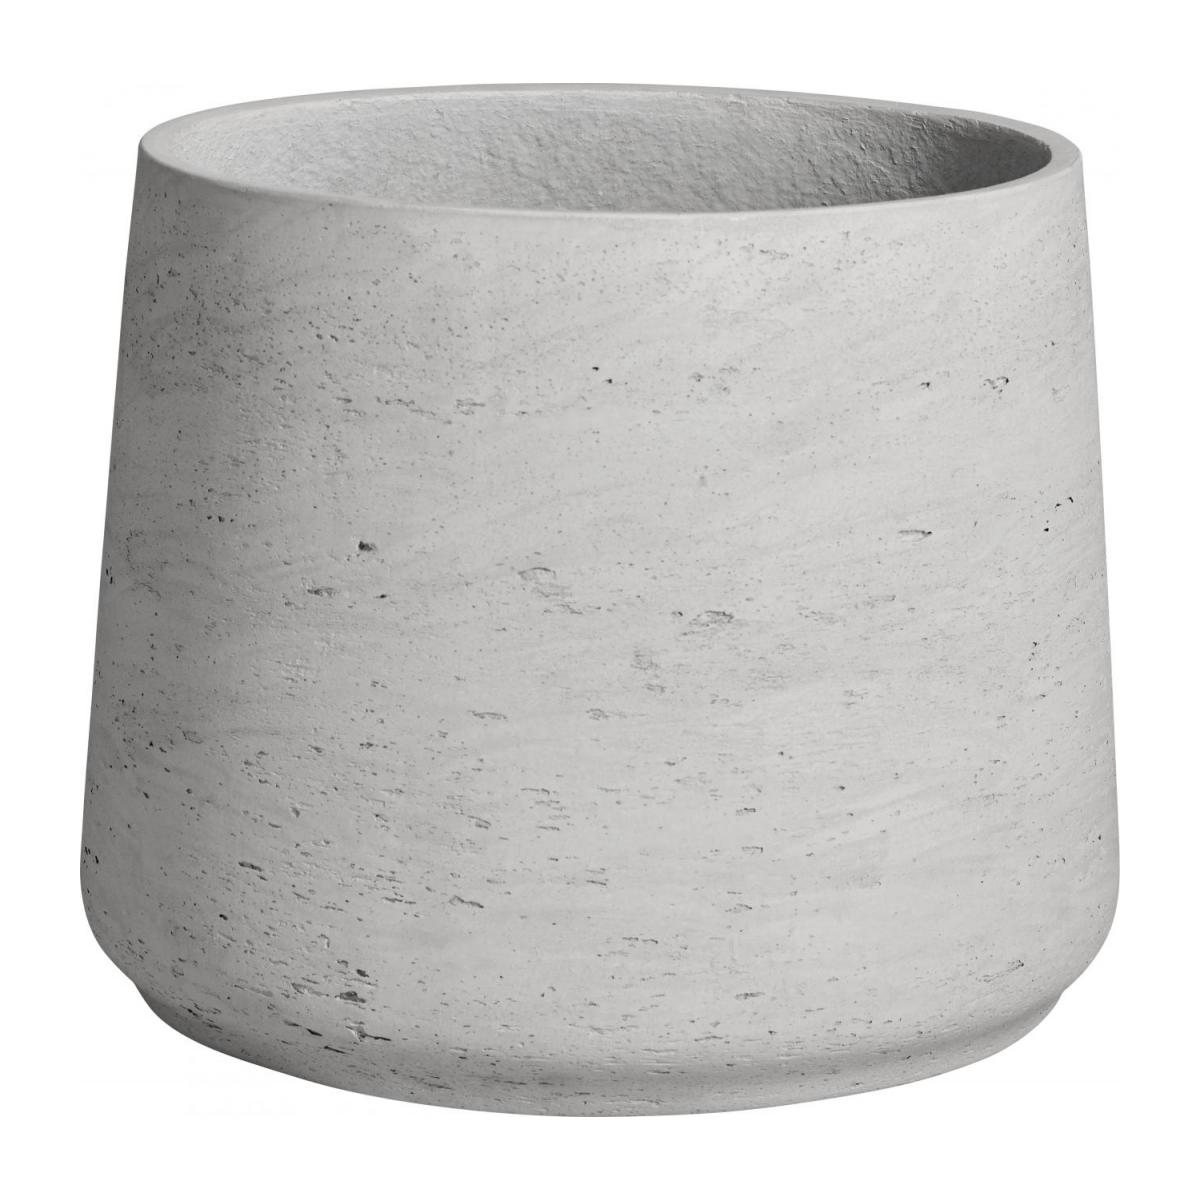 Lot de 2 cache-pots en ciment - Gris clair n°3